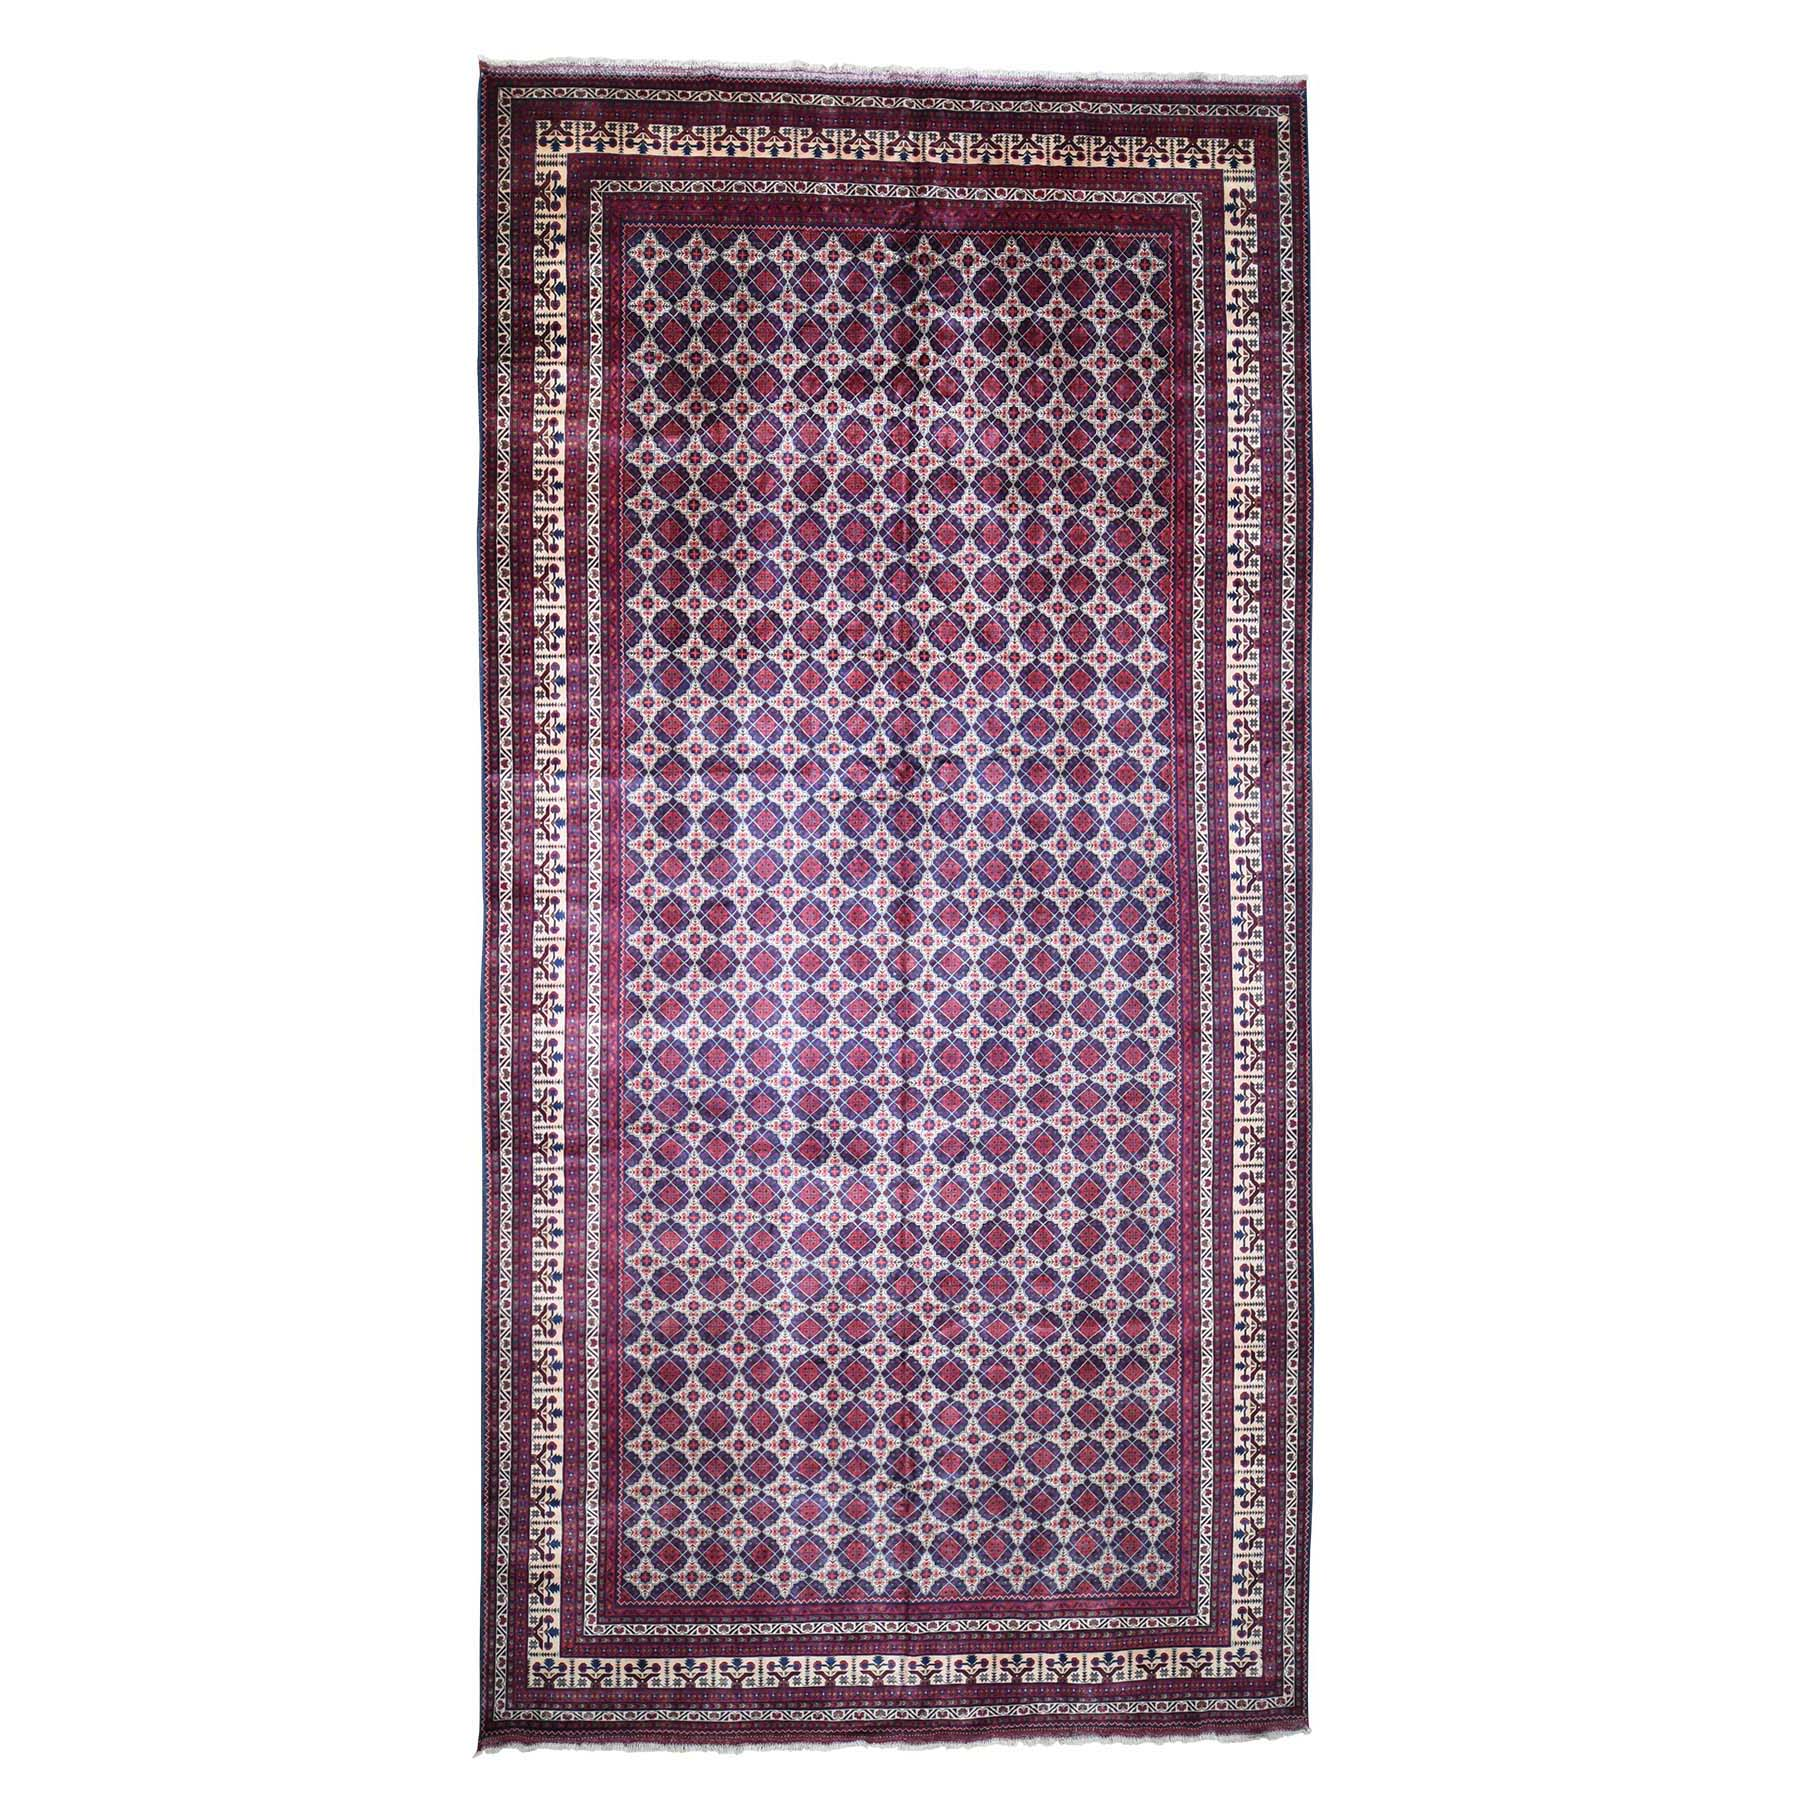 Nomadic And Village Collection Hand Knotted Red Rug No: 188184